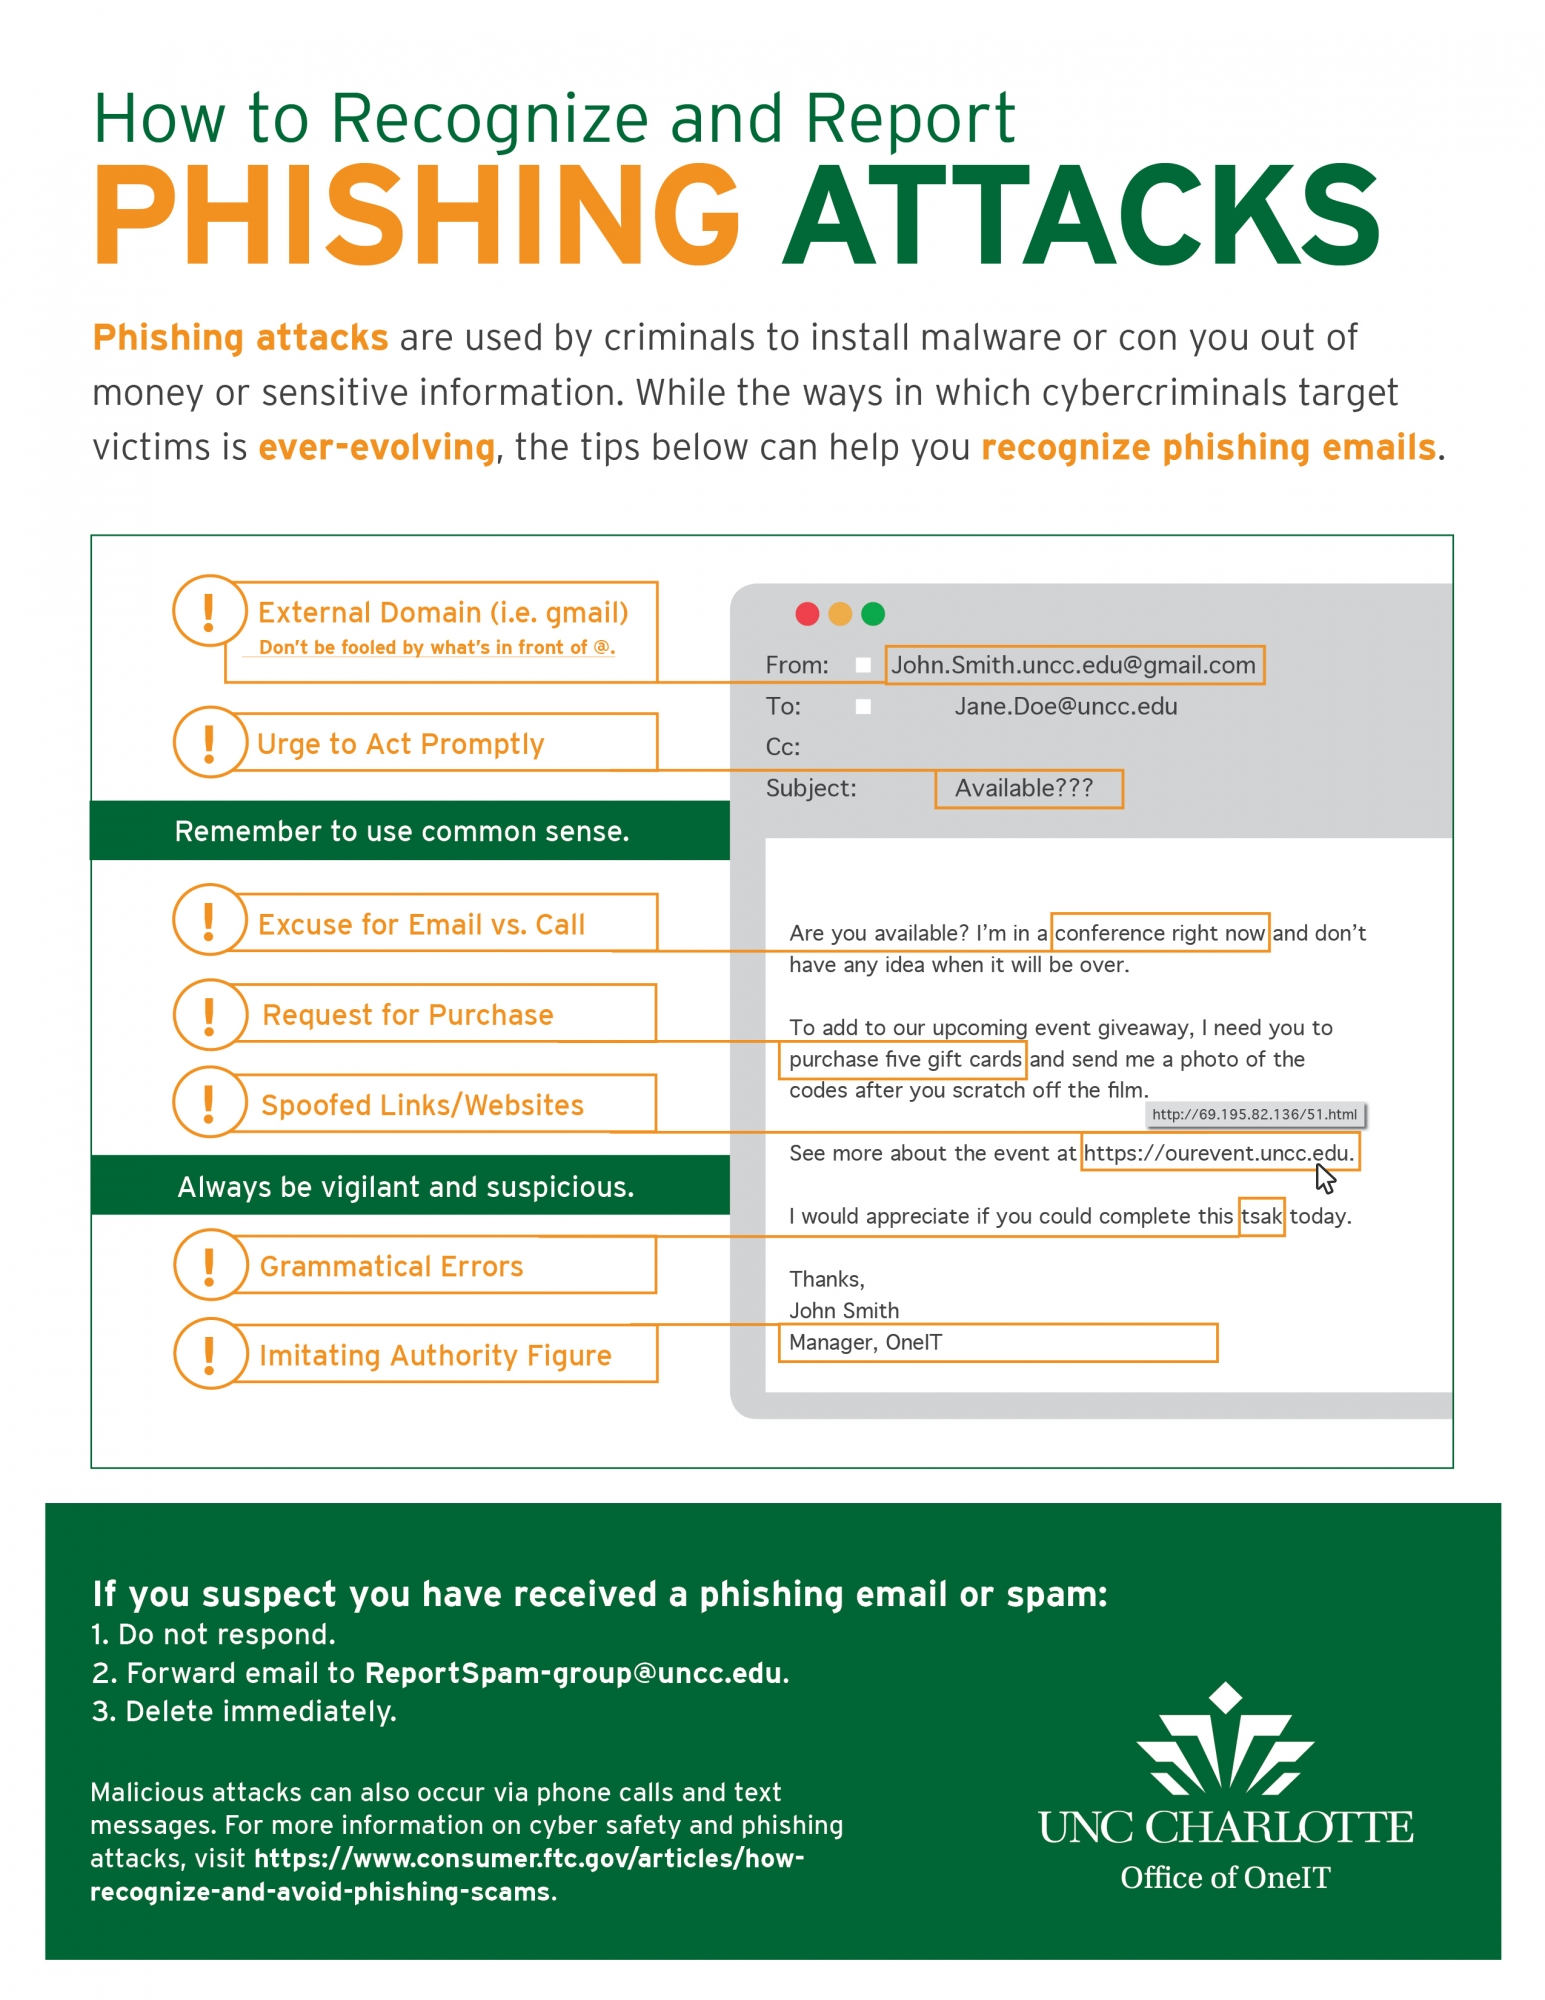 Learn how to report phishing attacks